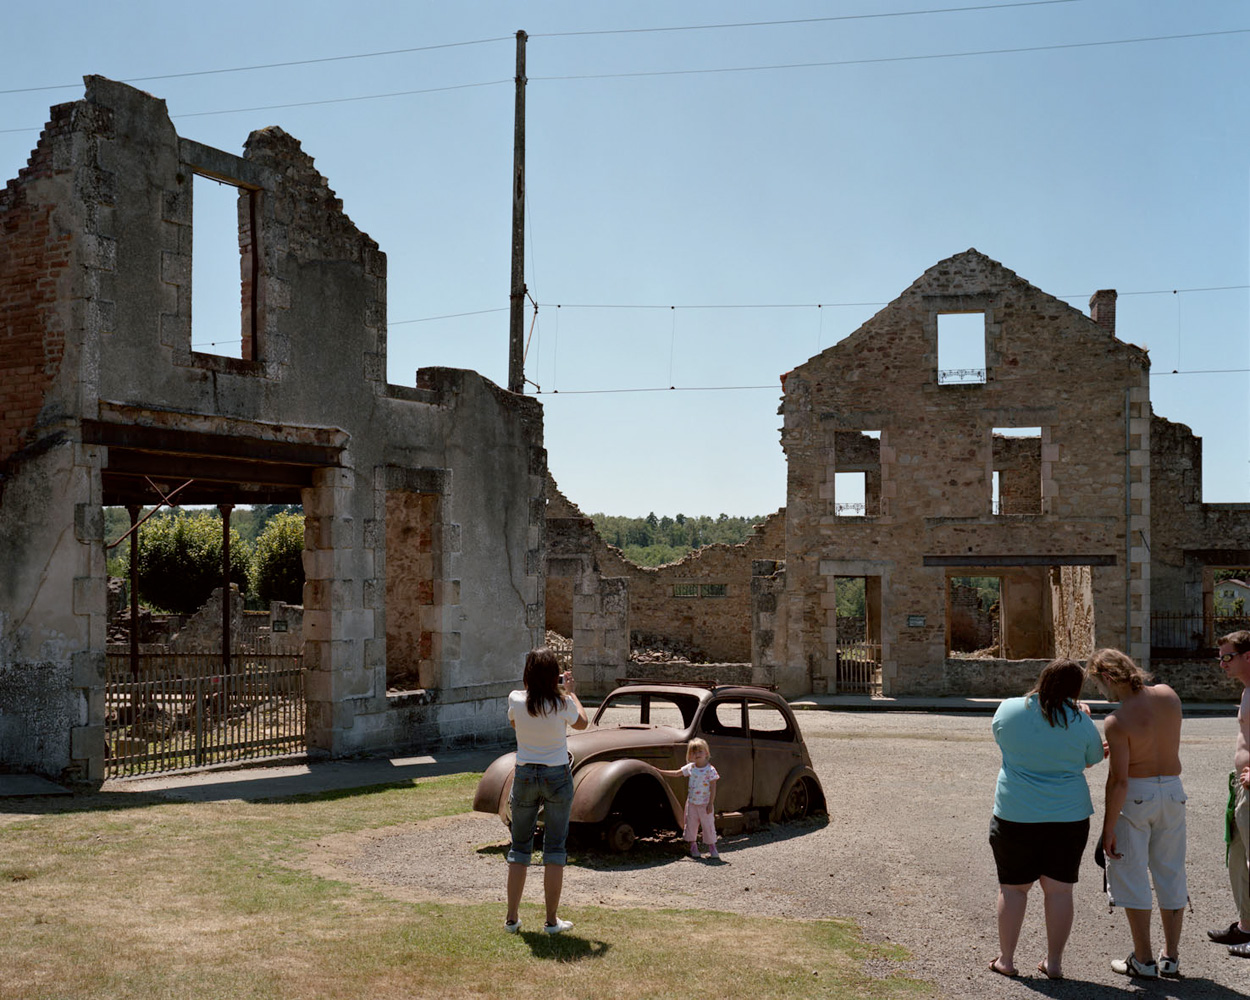 Oradour-sur-Glane WWII martyr village — France. 2009.On the afternoon of June 10, 1944, a detachment of SS troops arrived in Oradour-sur-Glane and rounded up the inhabitants, including those they had collected from nearby farms on their way in. At the end of the day, the SS had murdered a total of 642 men, women and children. Following the war the French government decided to preserve the town in its ruined state as a memorial to the murdered inhabitants.